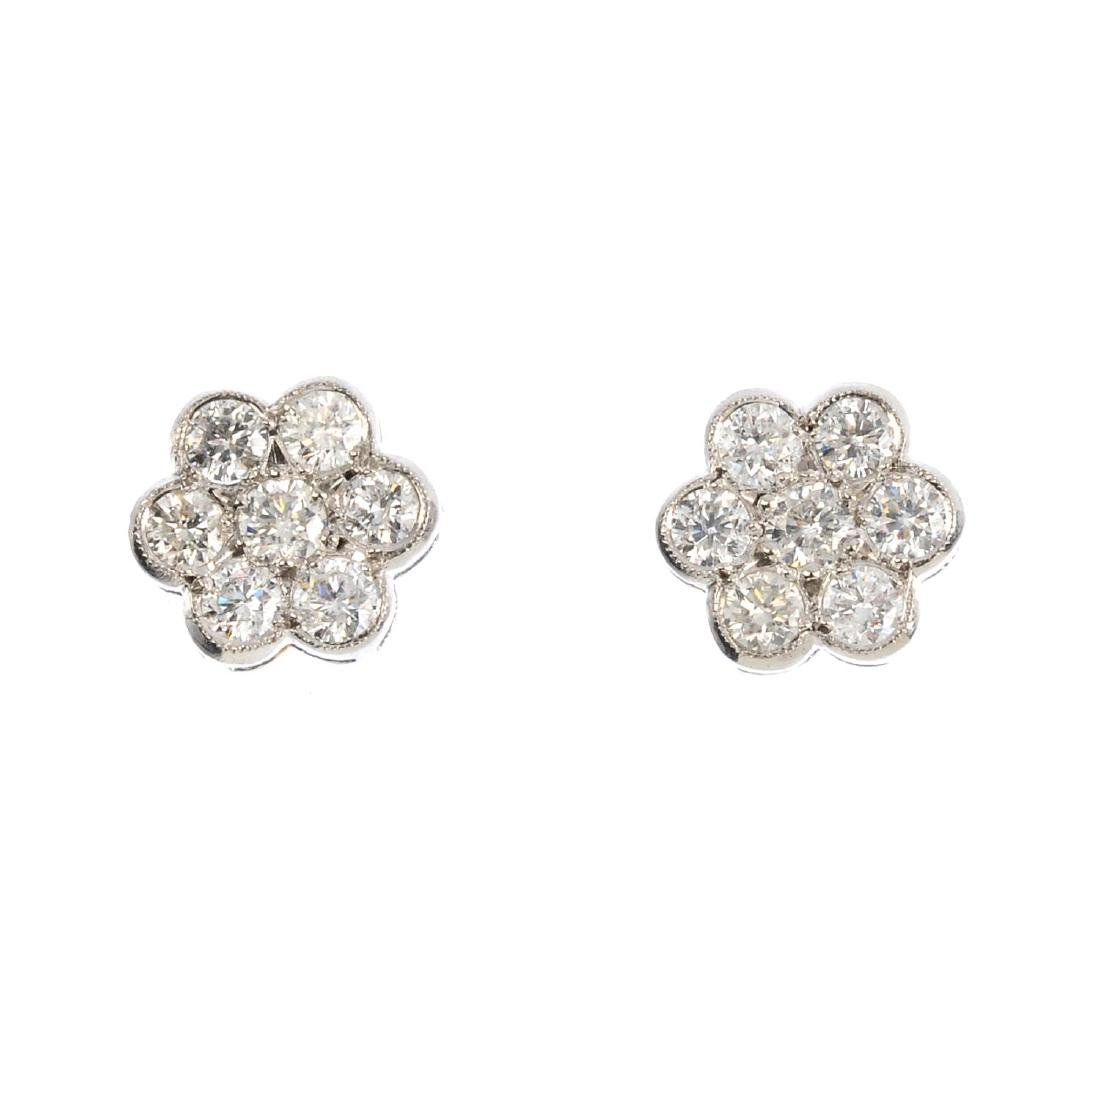 A pair of diamond cluster earrings. Each designed as a